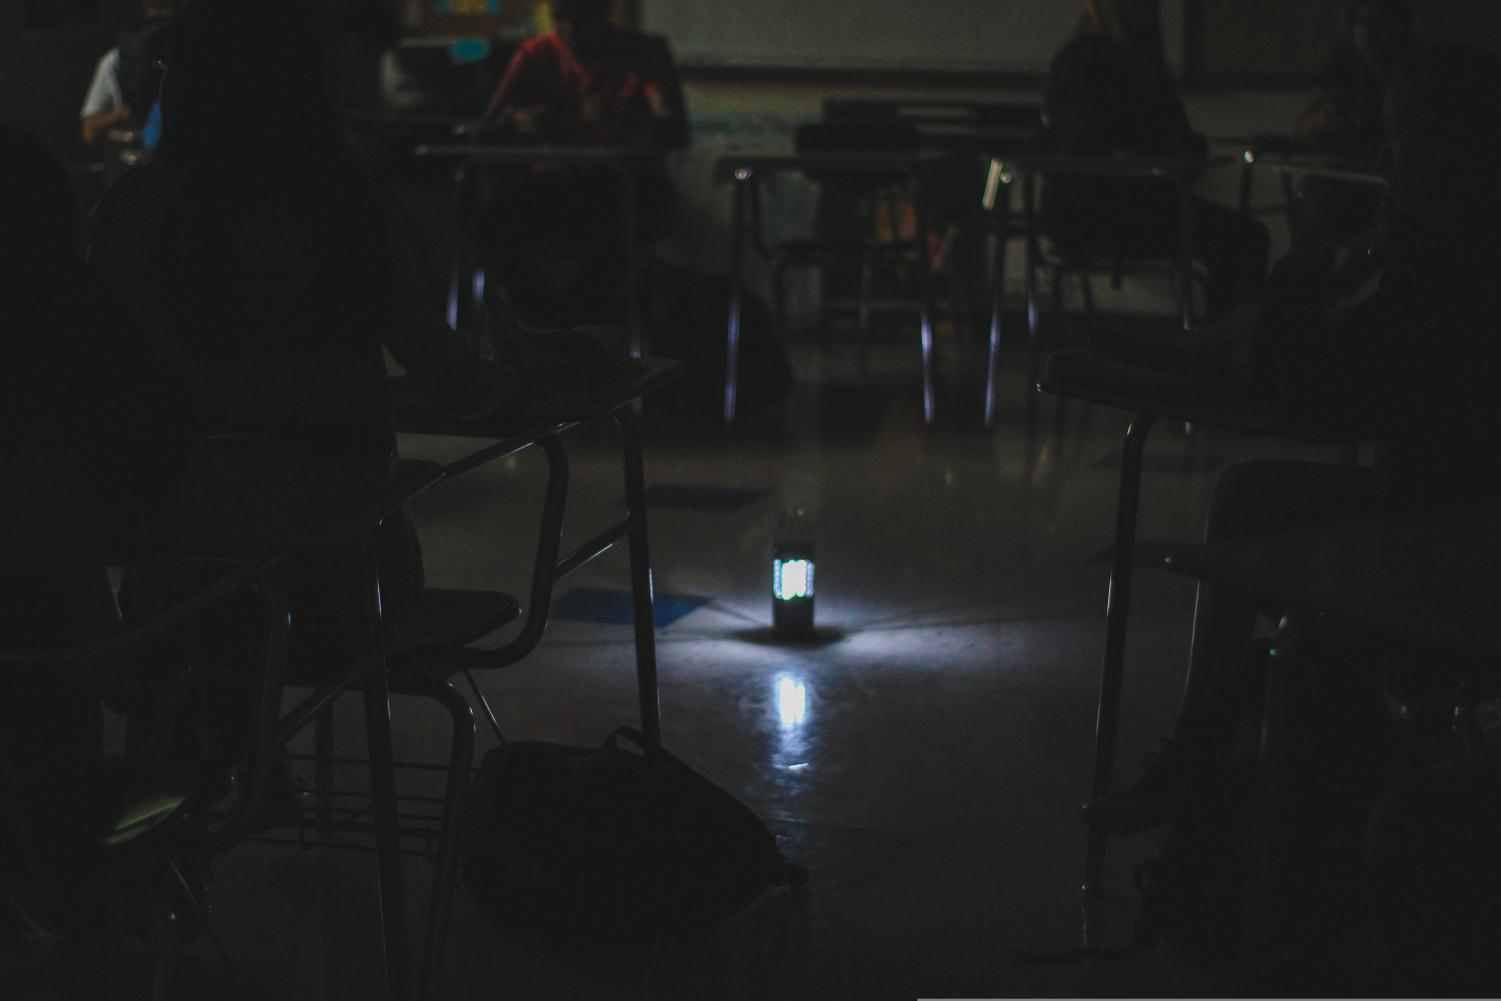 Irvington students and teachers used unique, creative approaches to continue school throughout the prolonged blackout.